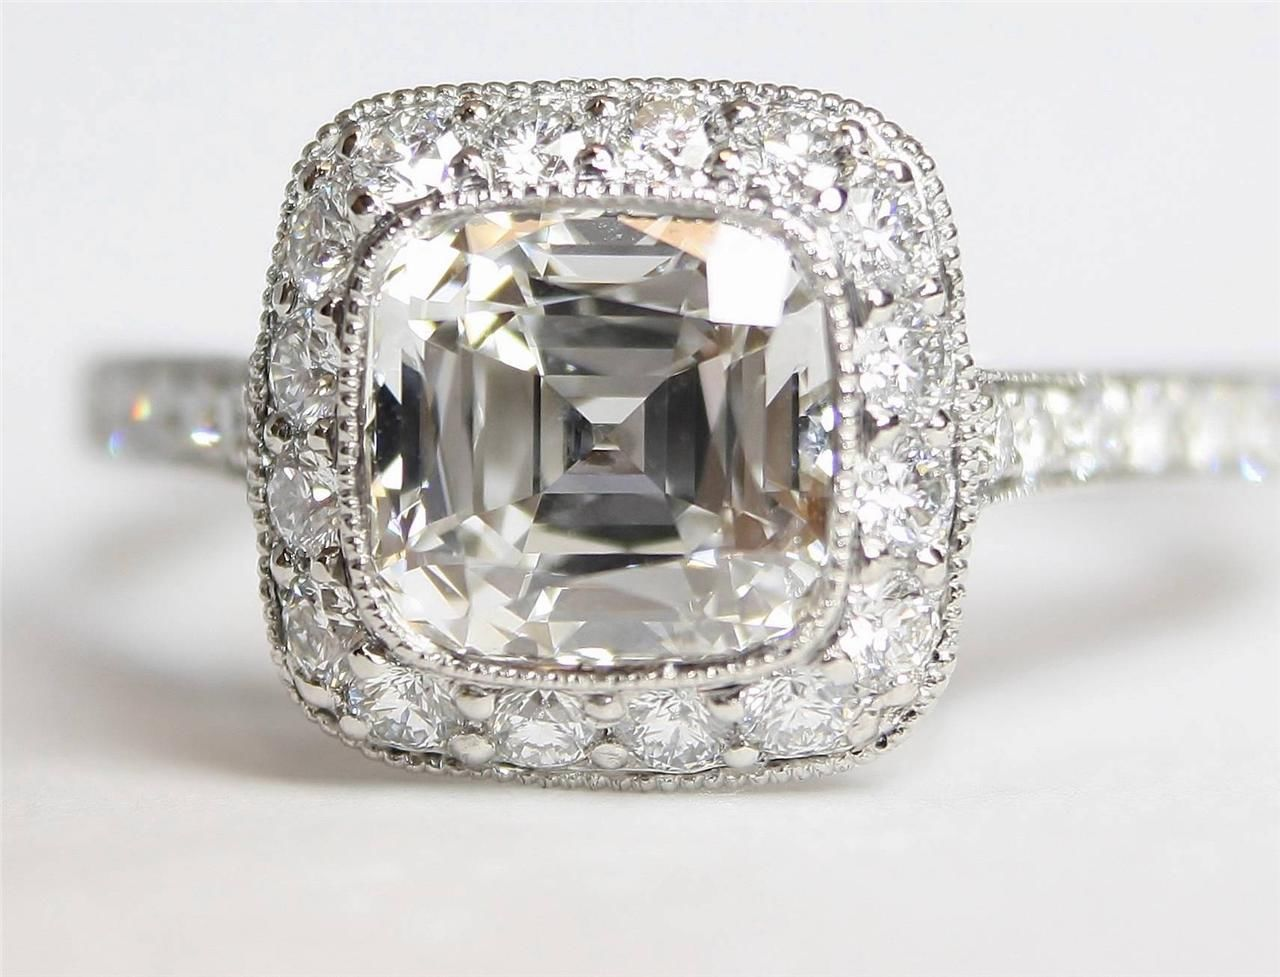 Sell a Tiffany Diamond Ring - Denver. CO